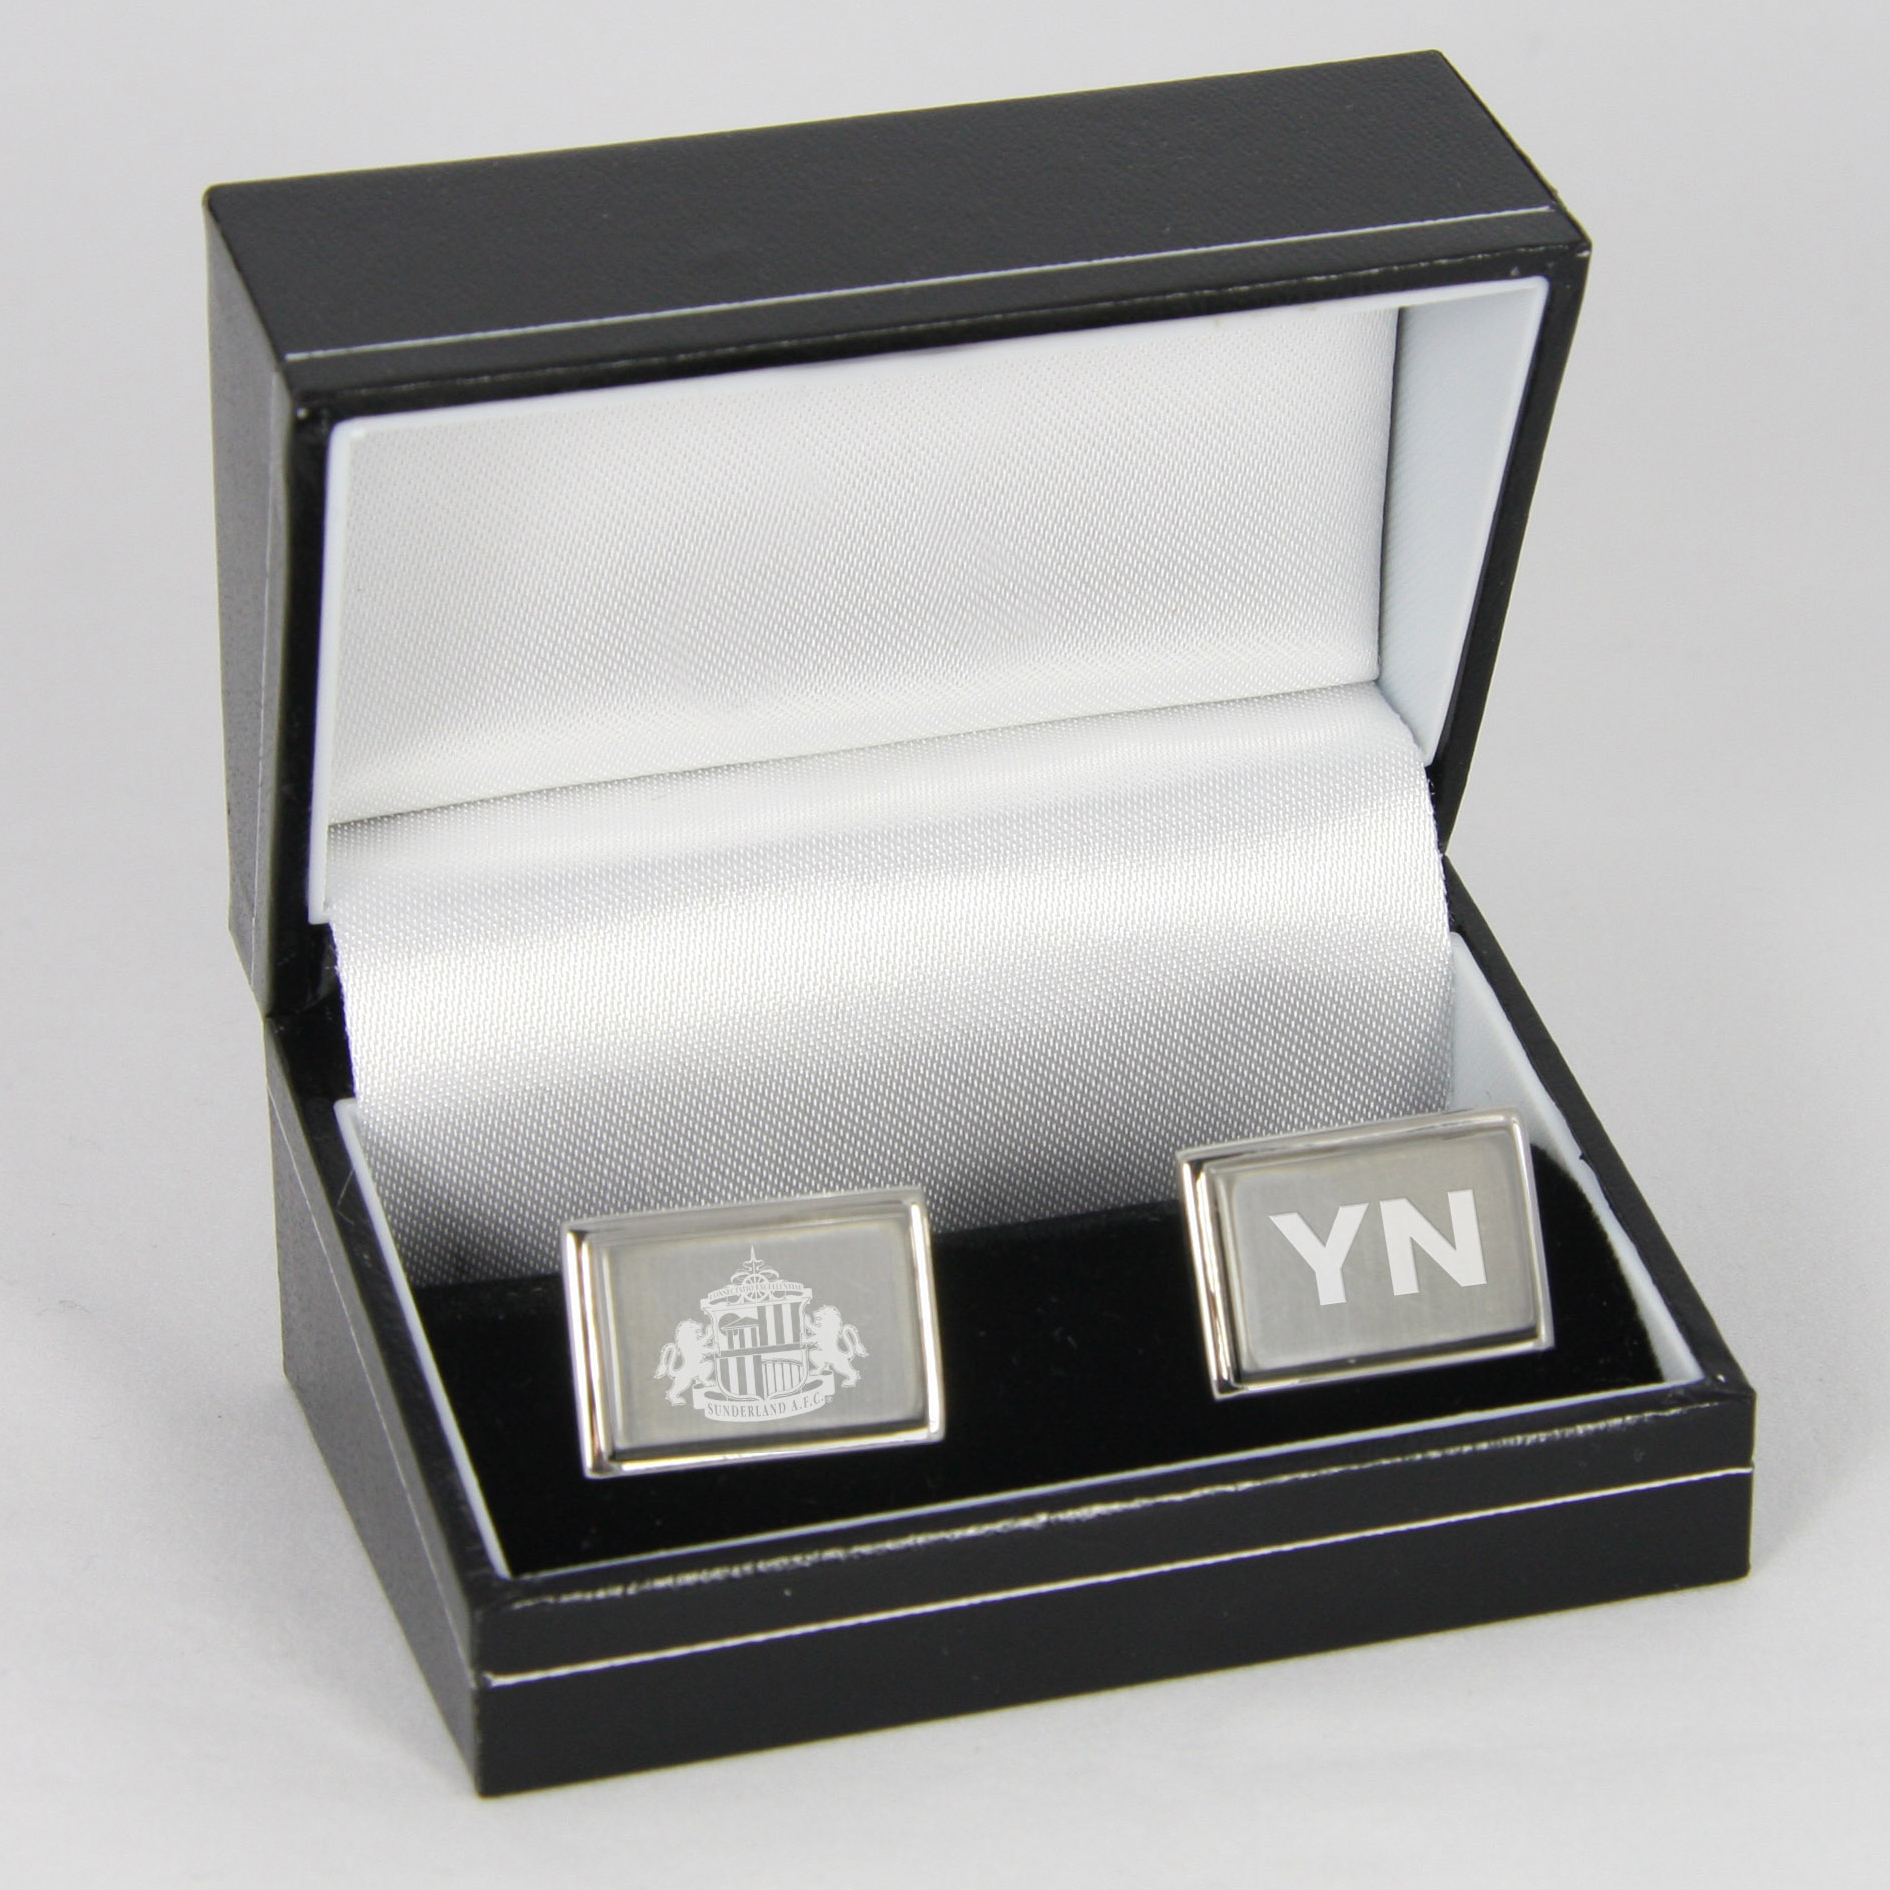 Sunderland Personalised Cufflinks